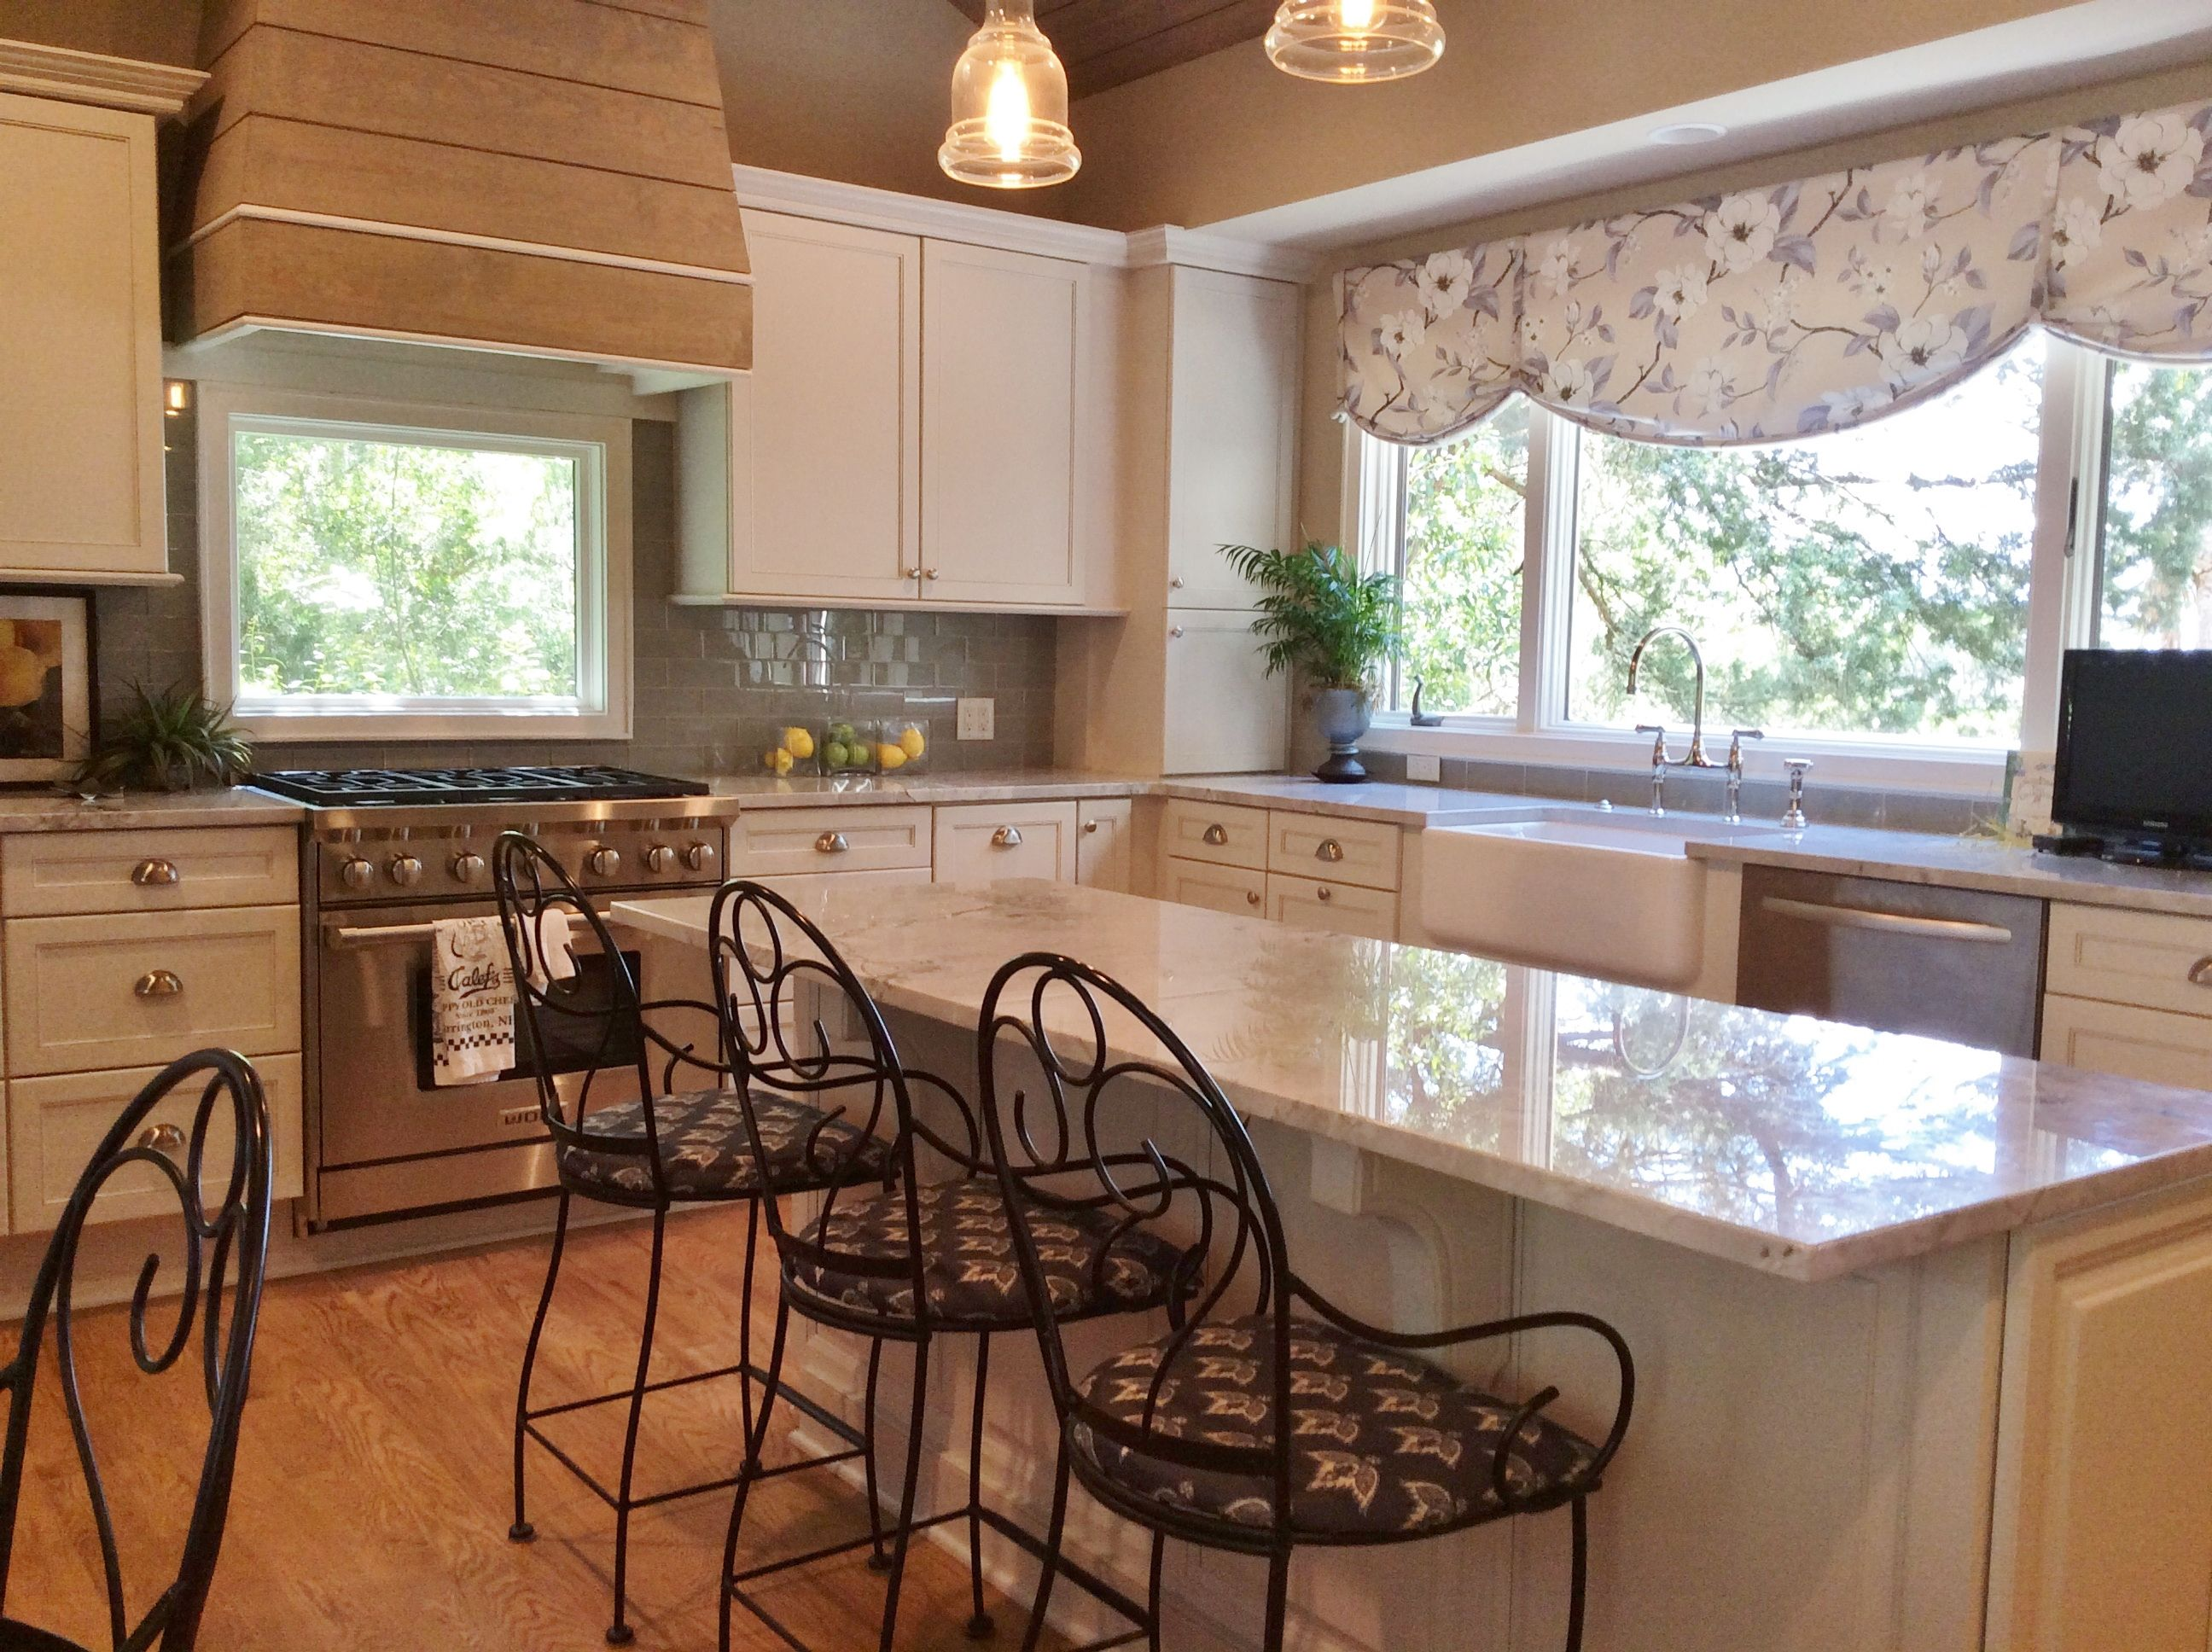 Complete Kitchen rehab: Added shiplap siding to ceiling and range ...